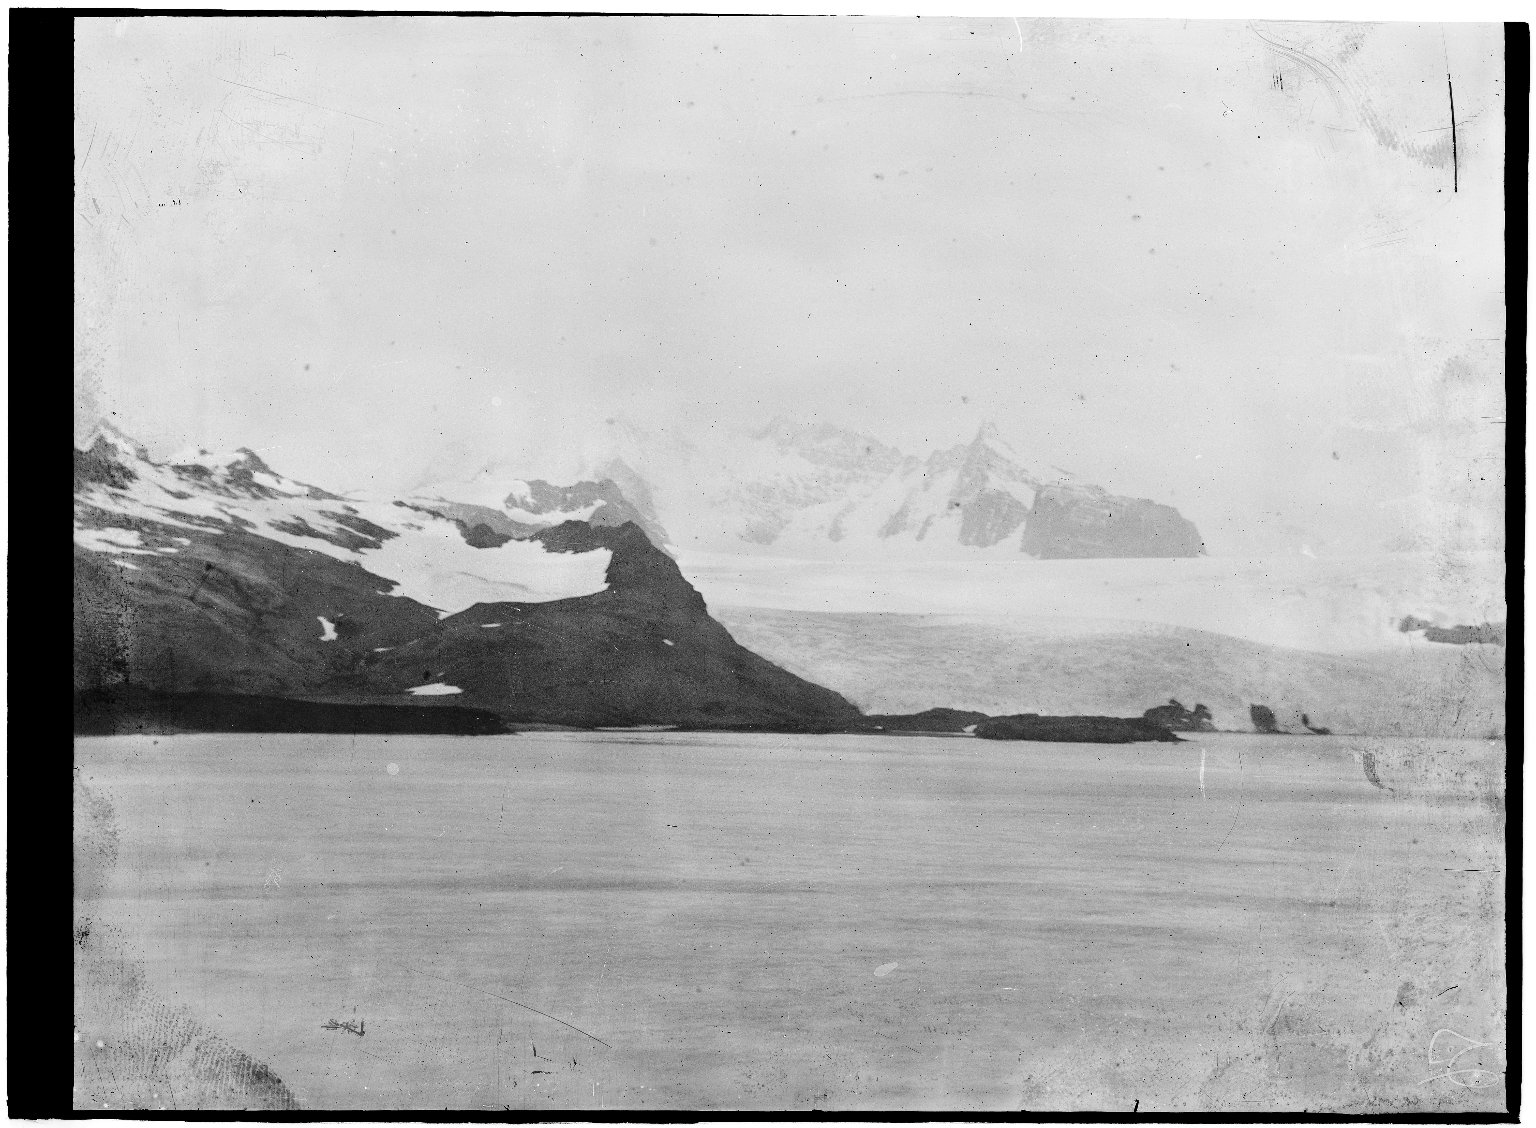 Prospecting Cruise to South Georgia and Antartica, 1913-14, P.054